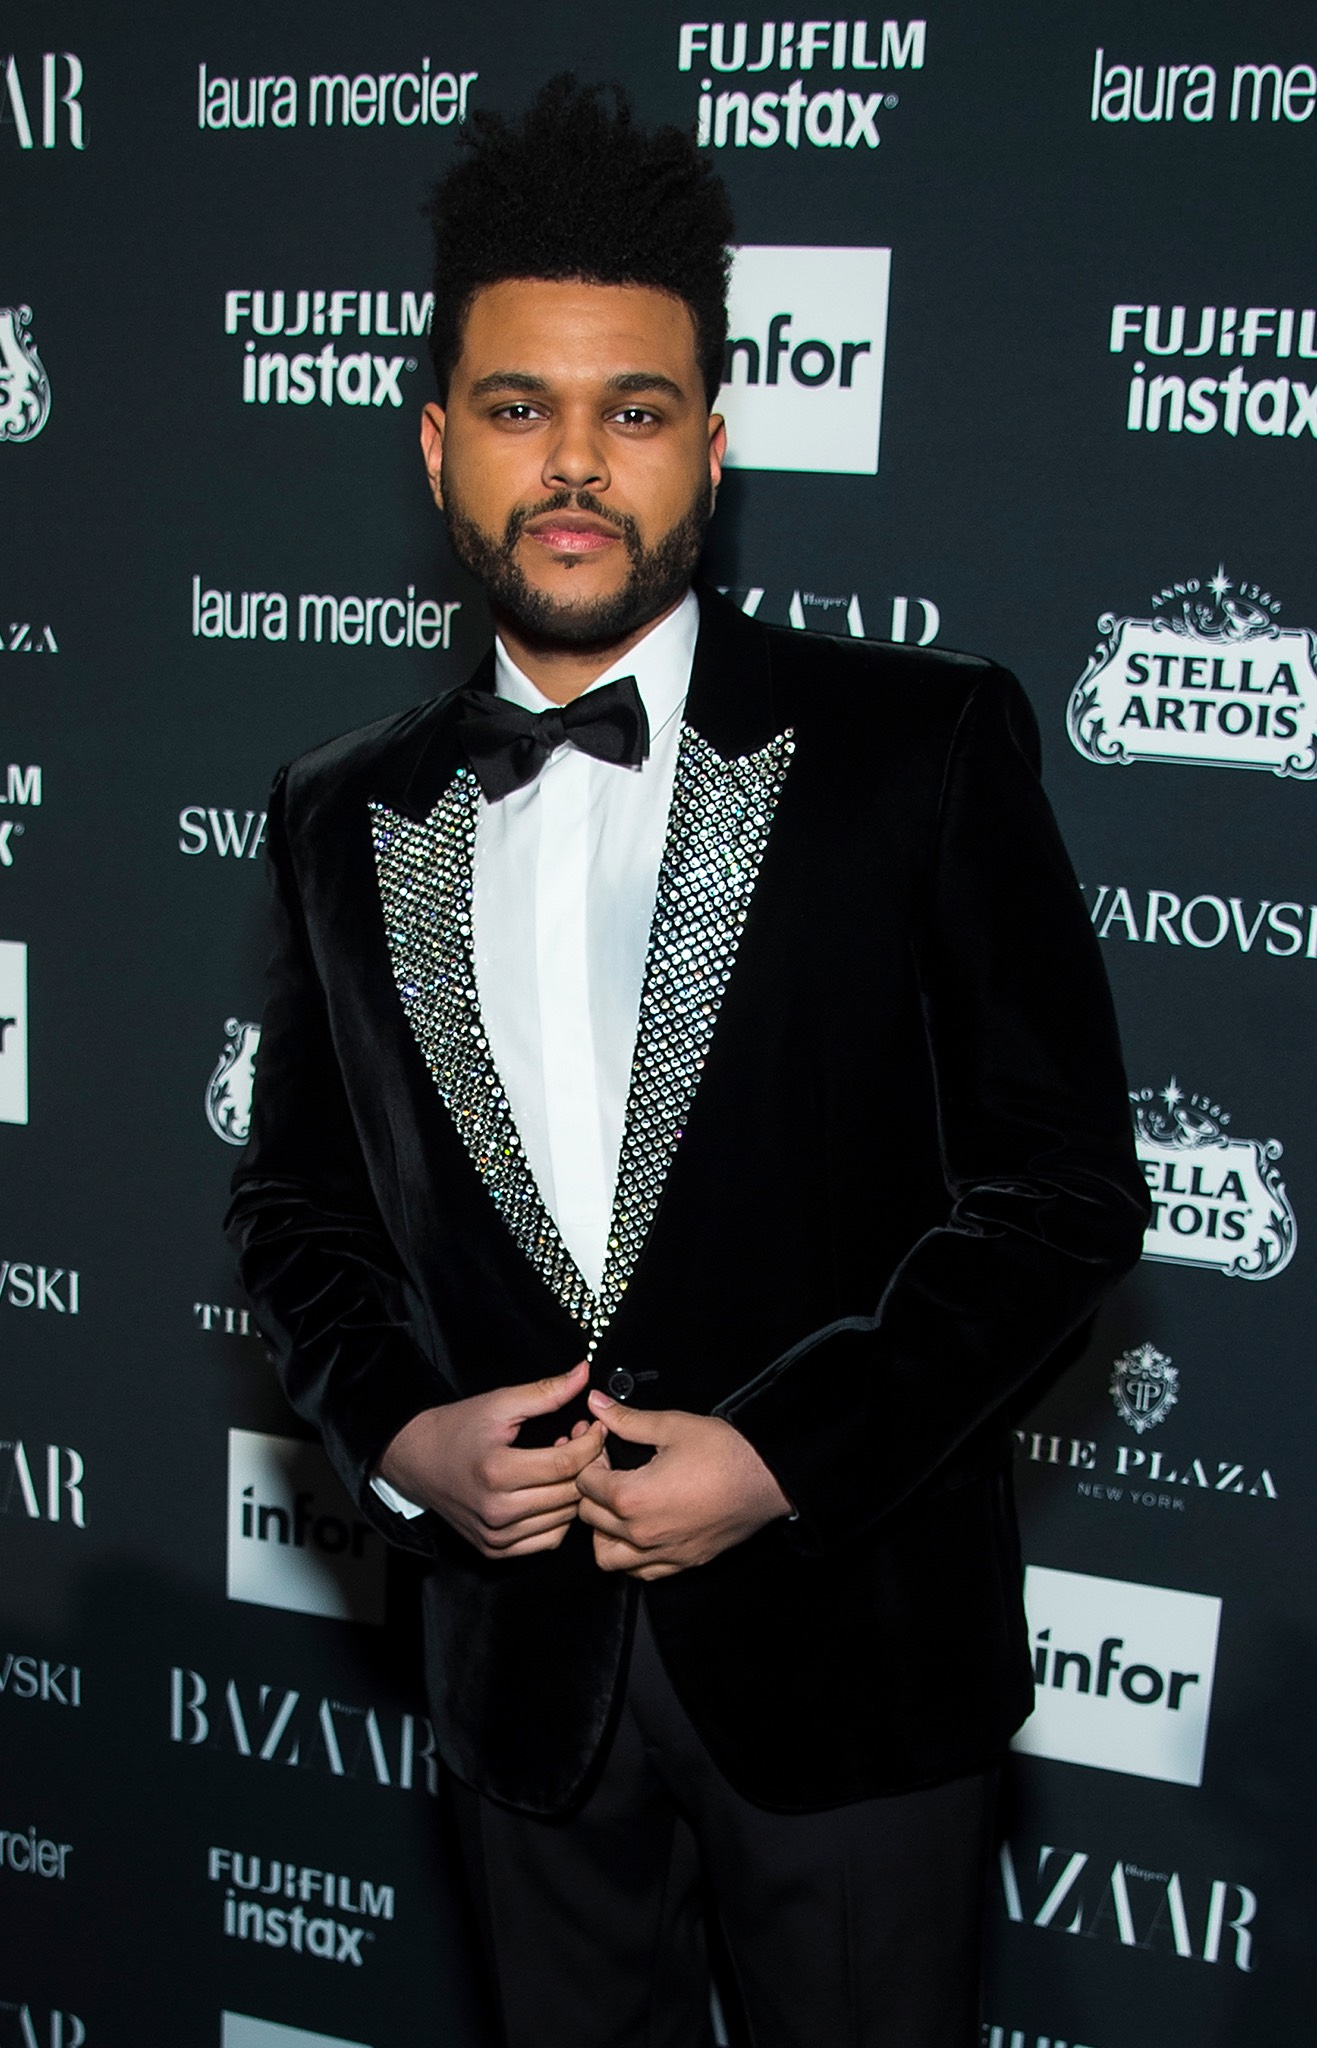 The Weeknd at Harpers Bazaar Icons by Carine Roitfeld event